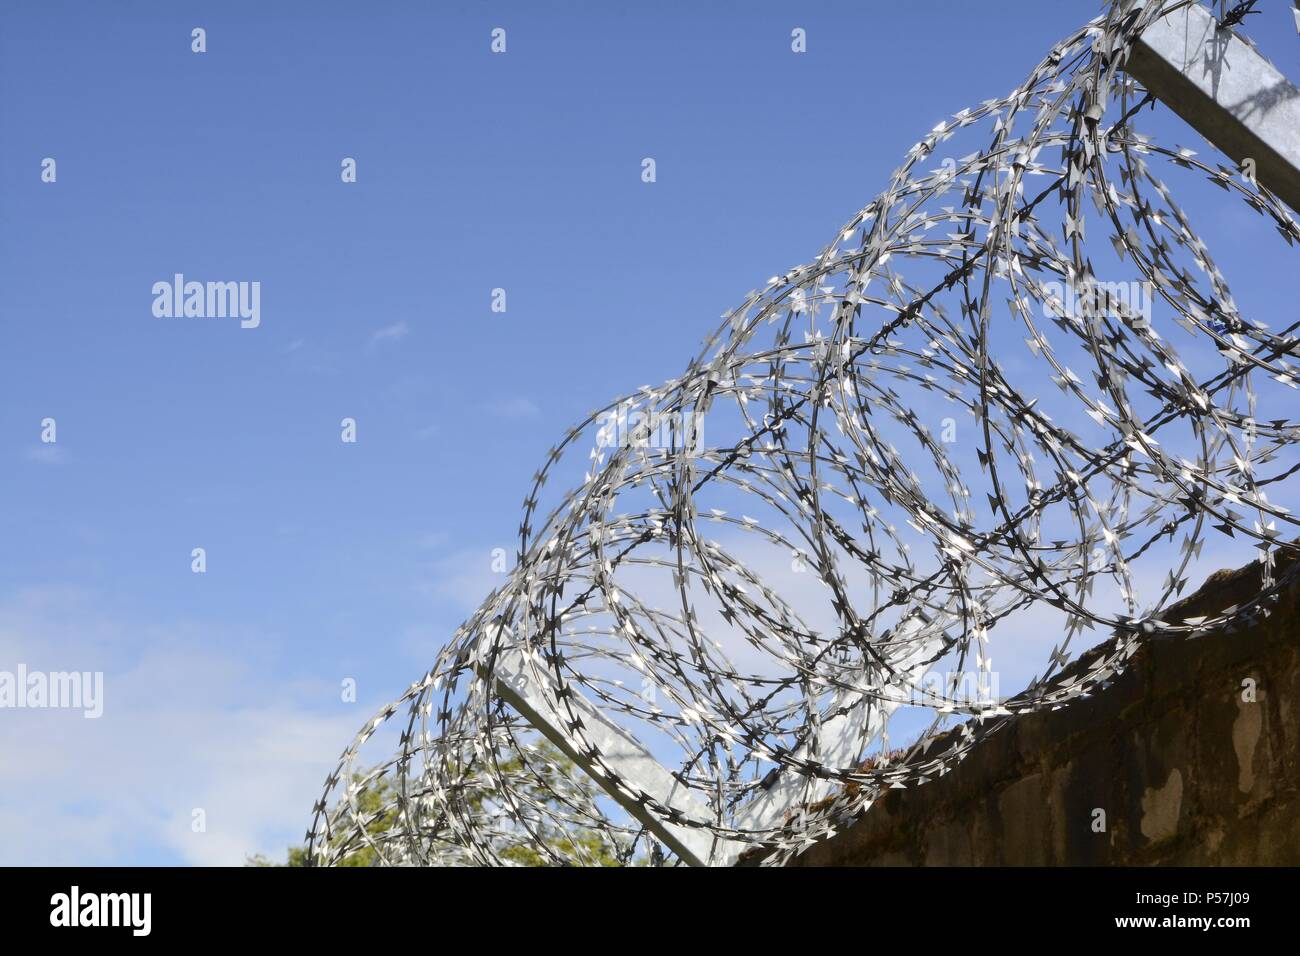 Barbed wire on a fence - Stock Image